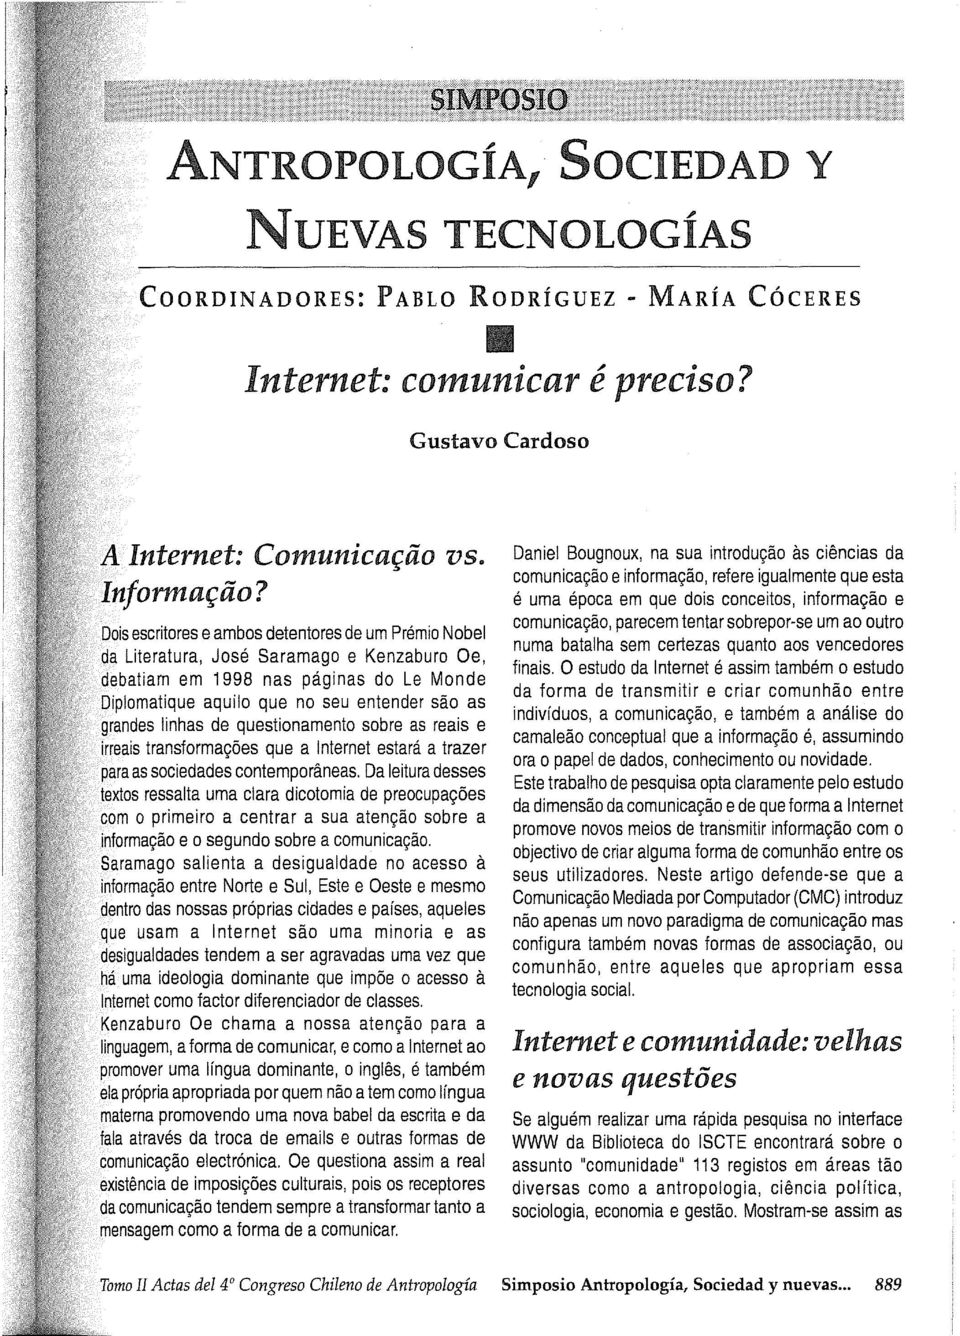 as grandes linhas de questionamento sobre as reais e irreais transformagoes que a Internet estará a trazer para as sociedades contemporaneas.